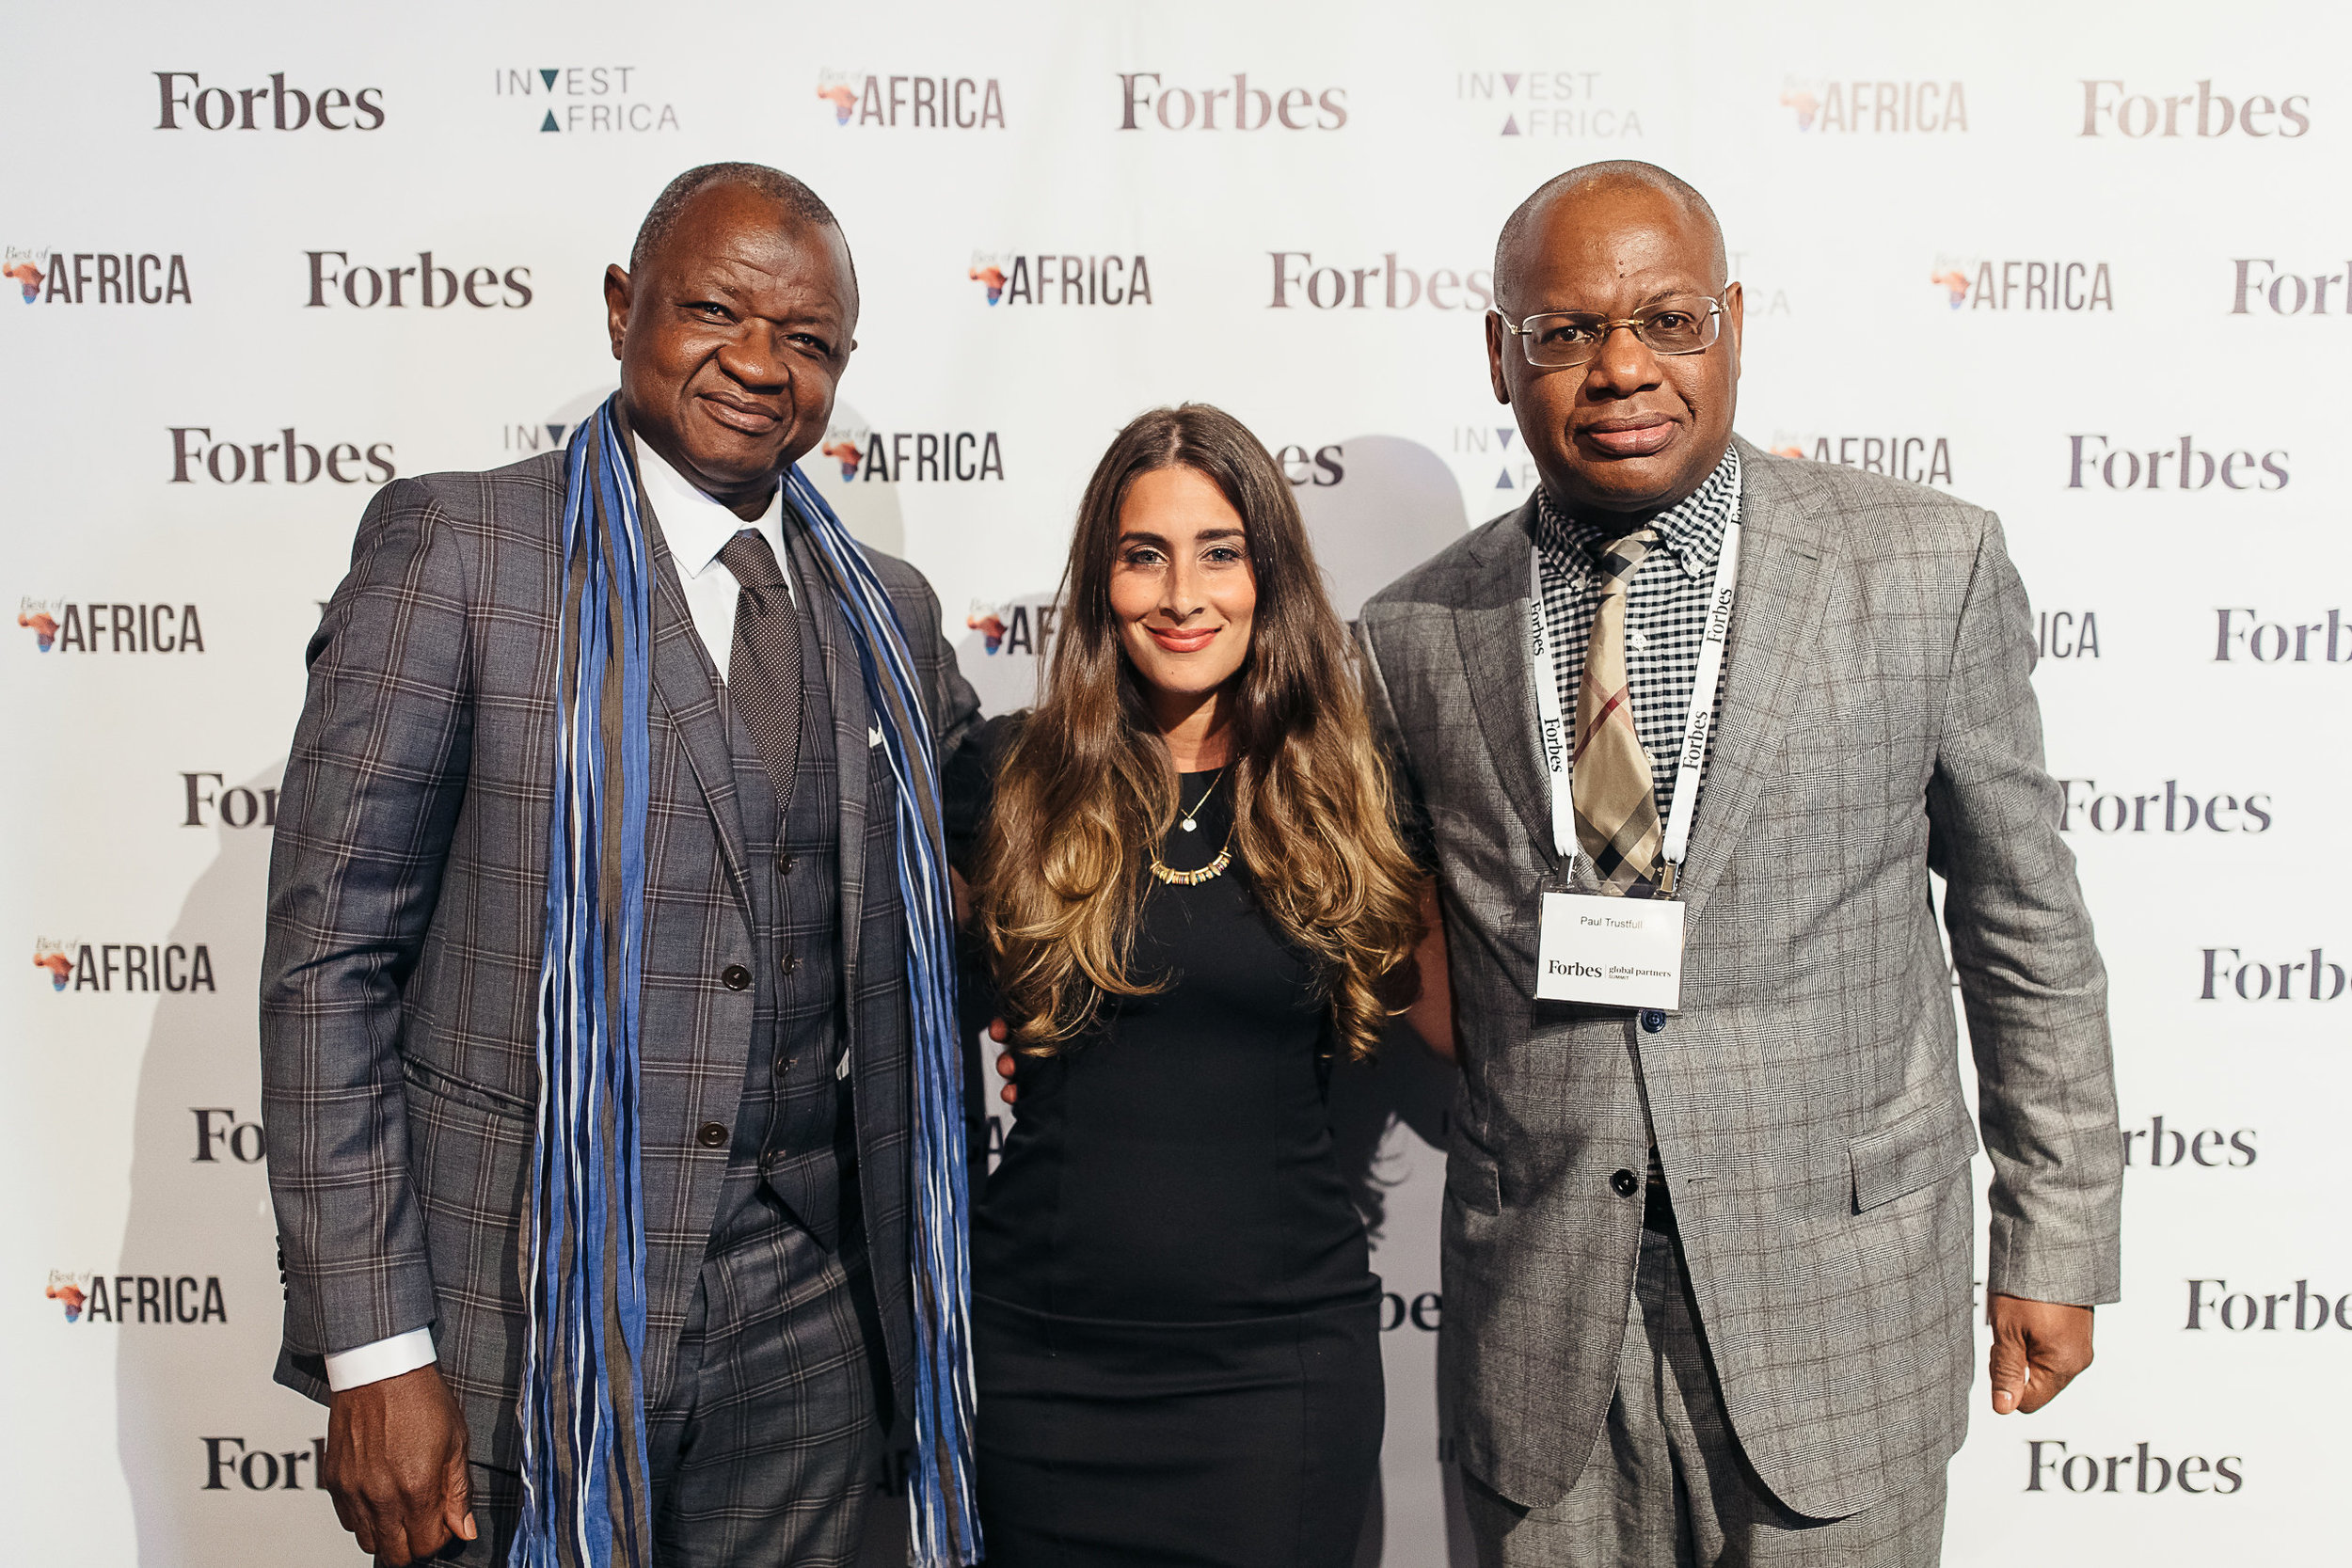 UNGA Week: Invest Africa US/Forbes Best of Africa Reception